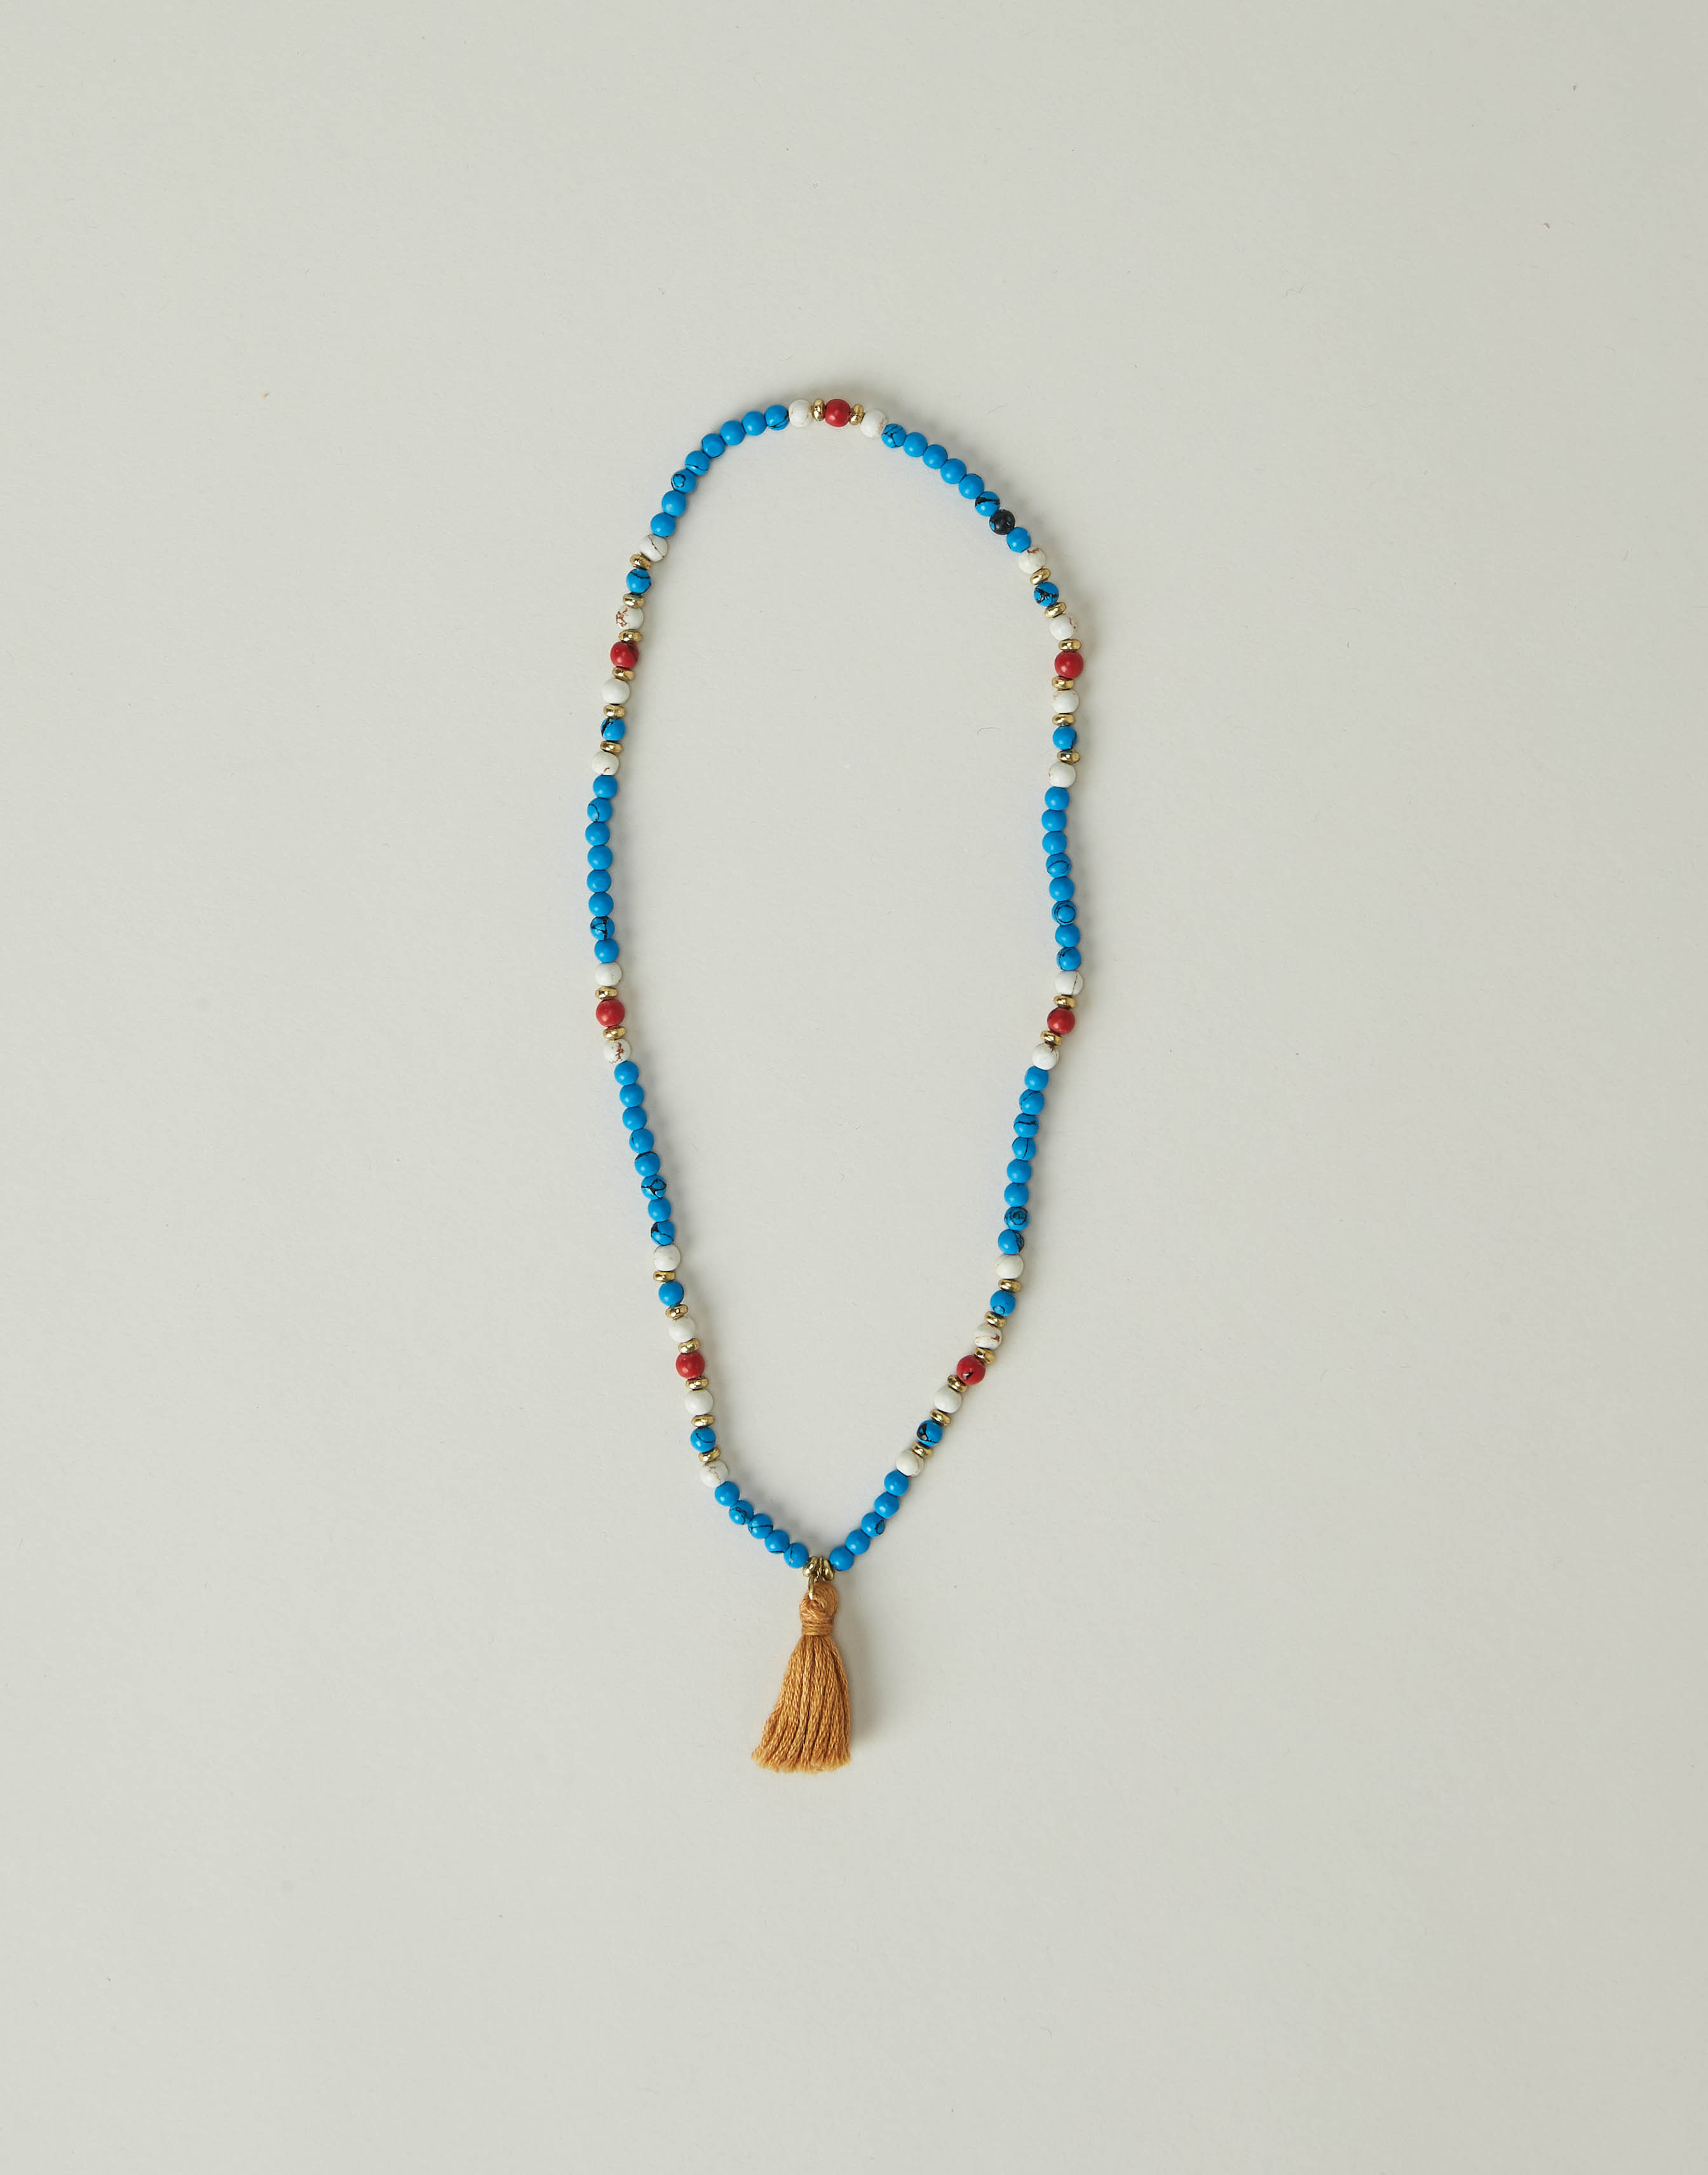 Beads and pompom necklace